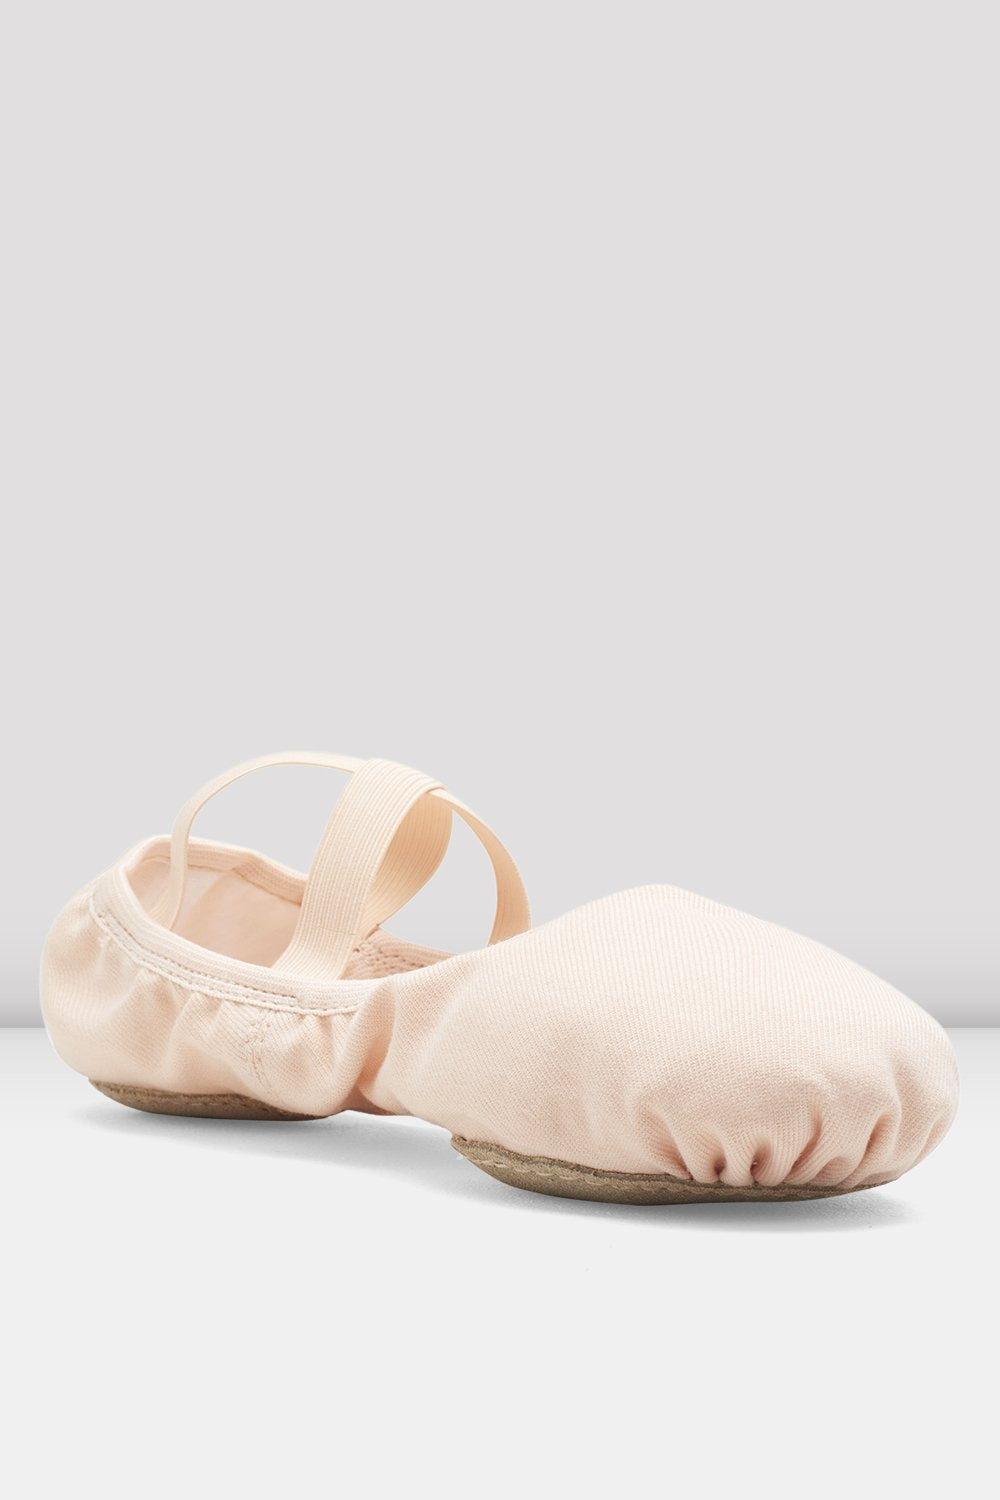 Theatrical pink canvas Bloch Ladies Performa Stretch Canvas Ballet Shoes single shoe side view focus on toe of shoe